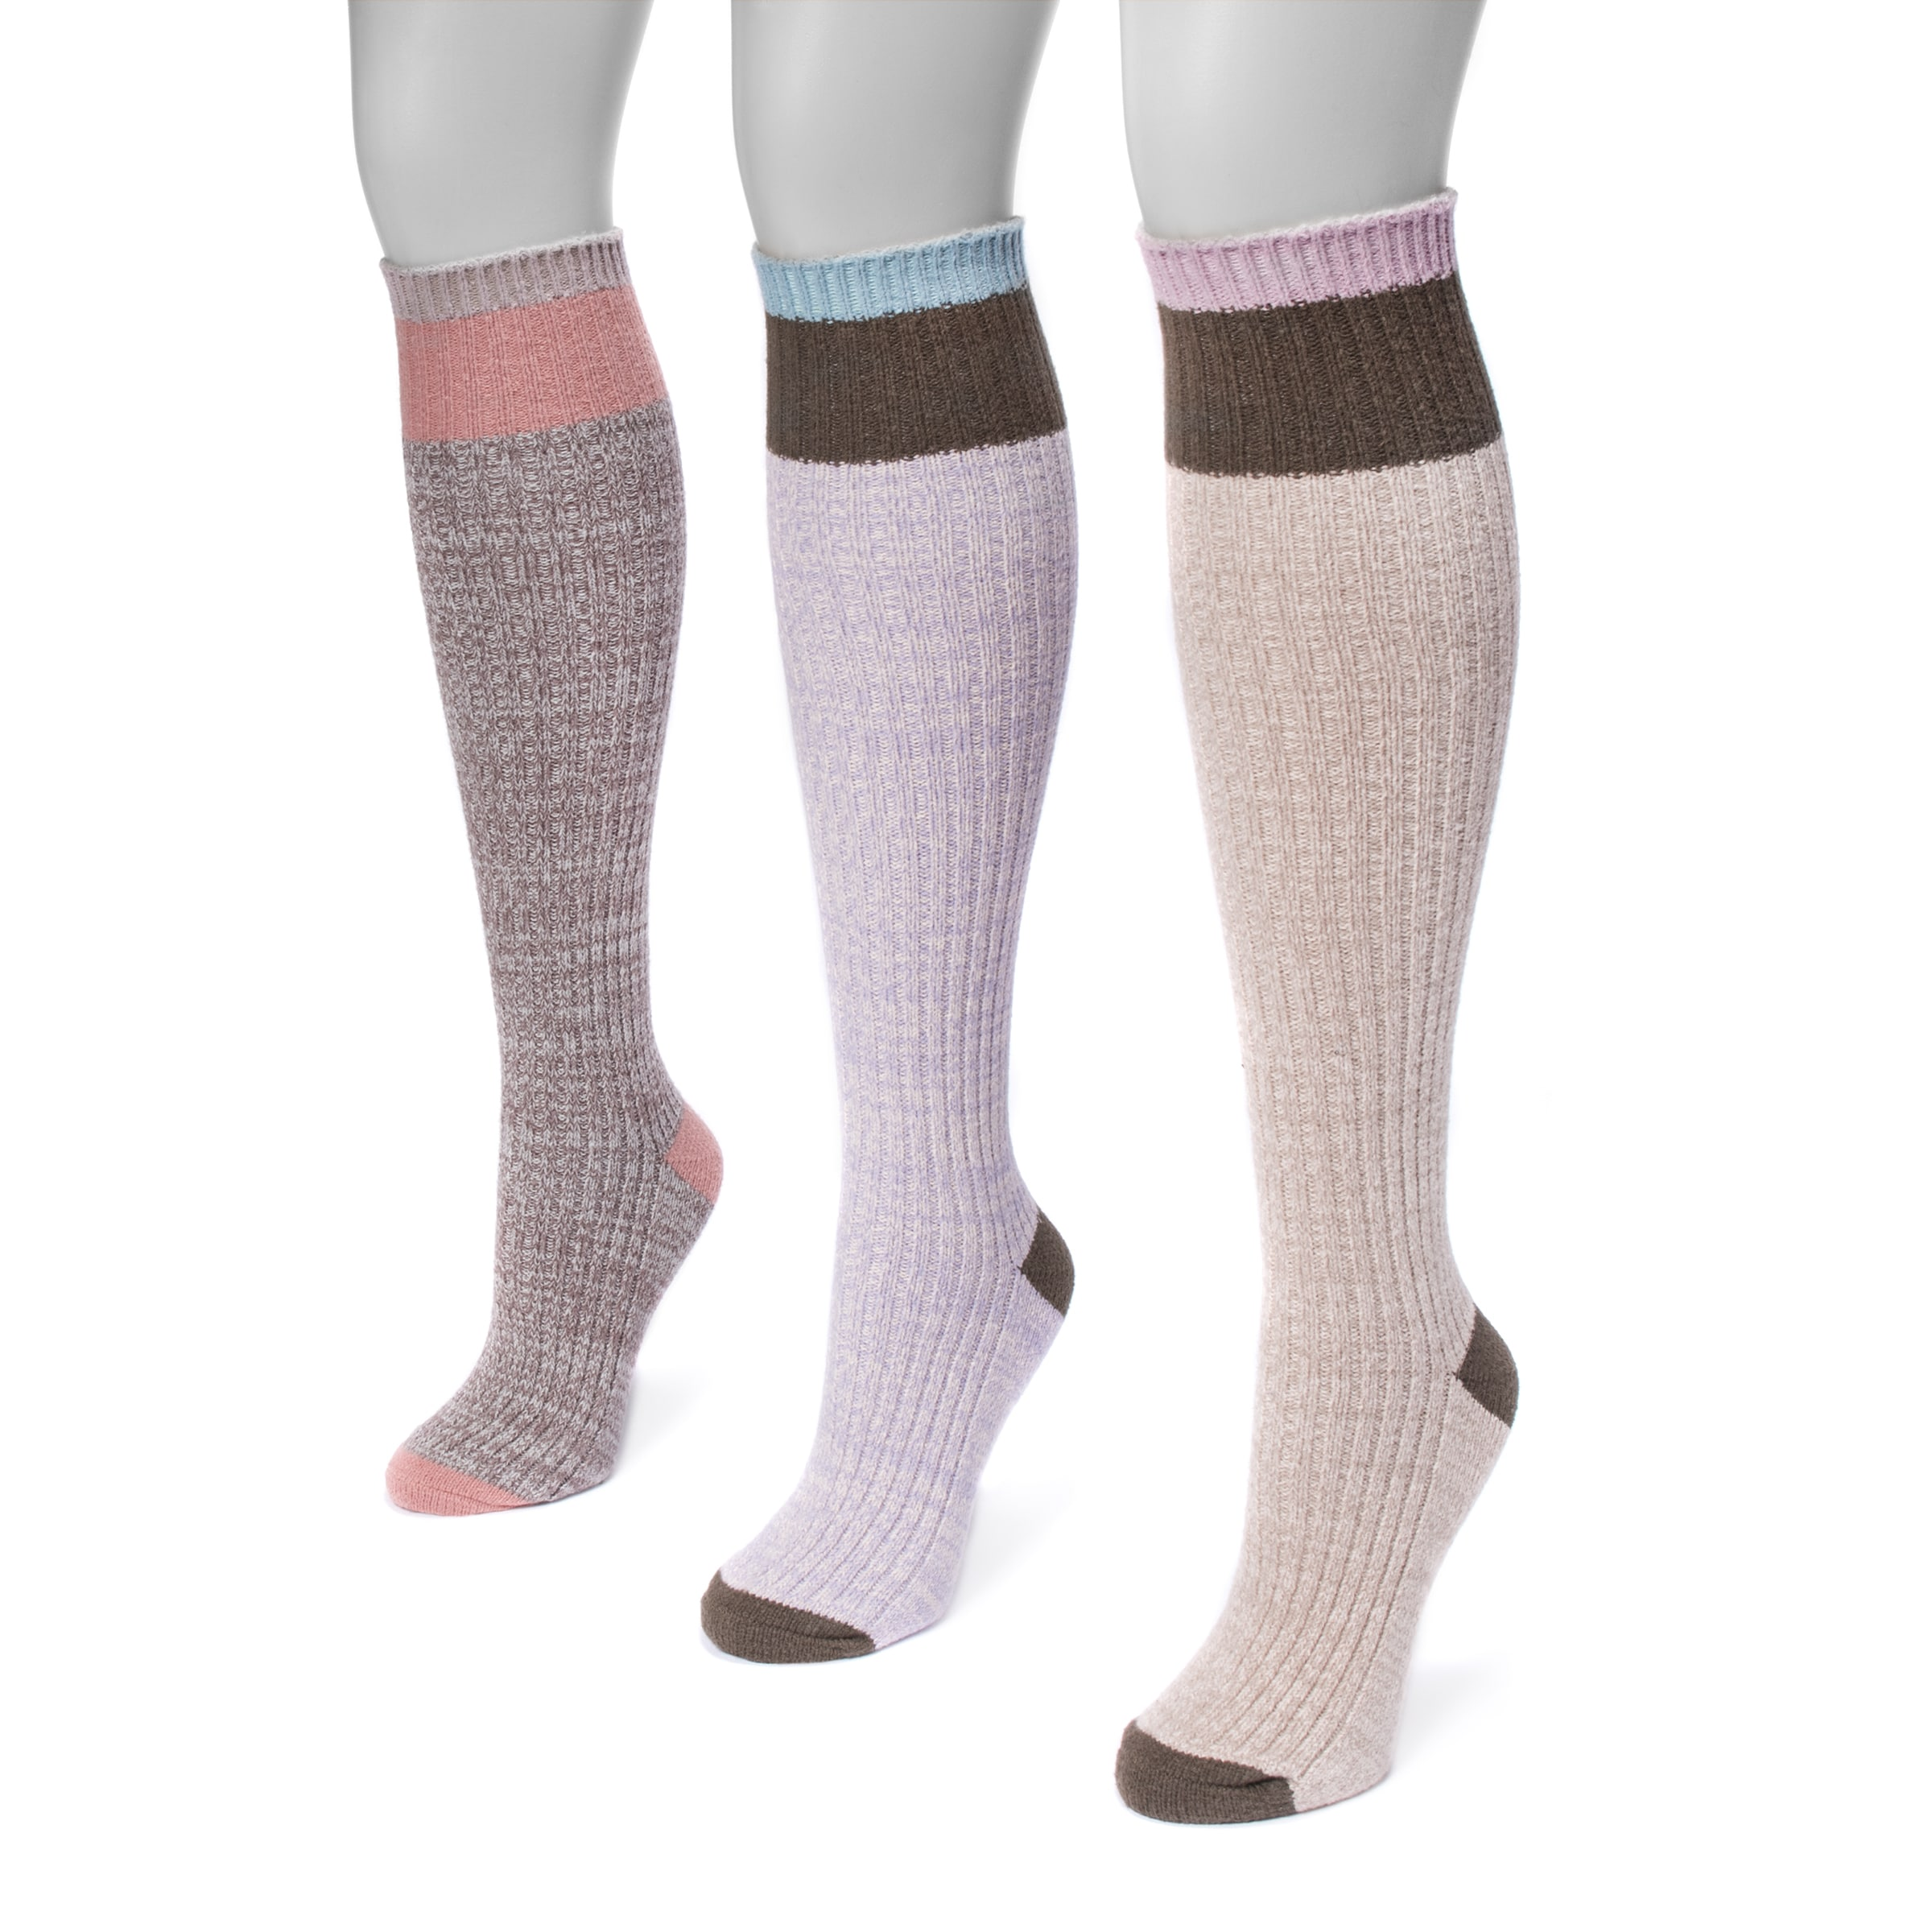 858661036 Shop MUK LUKS® Women s 3 Pair Pack Color Block Knee High Socks - Free  Shipping On Orders Over  45 - Overstock - 17033757